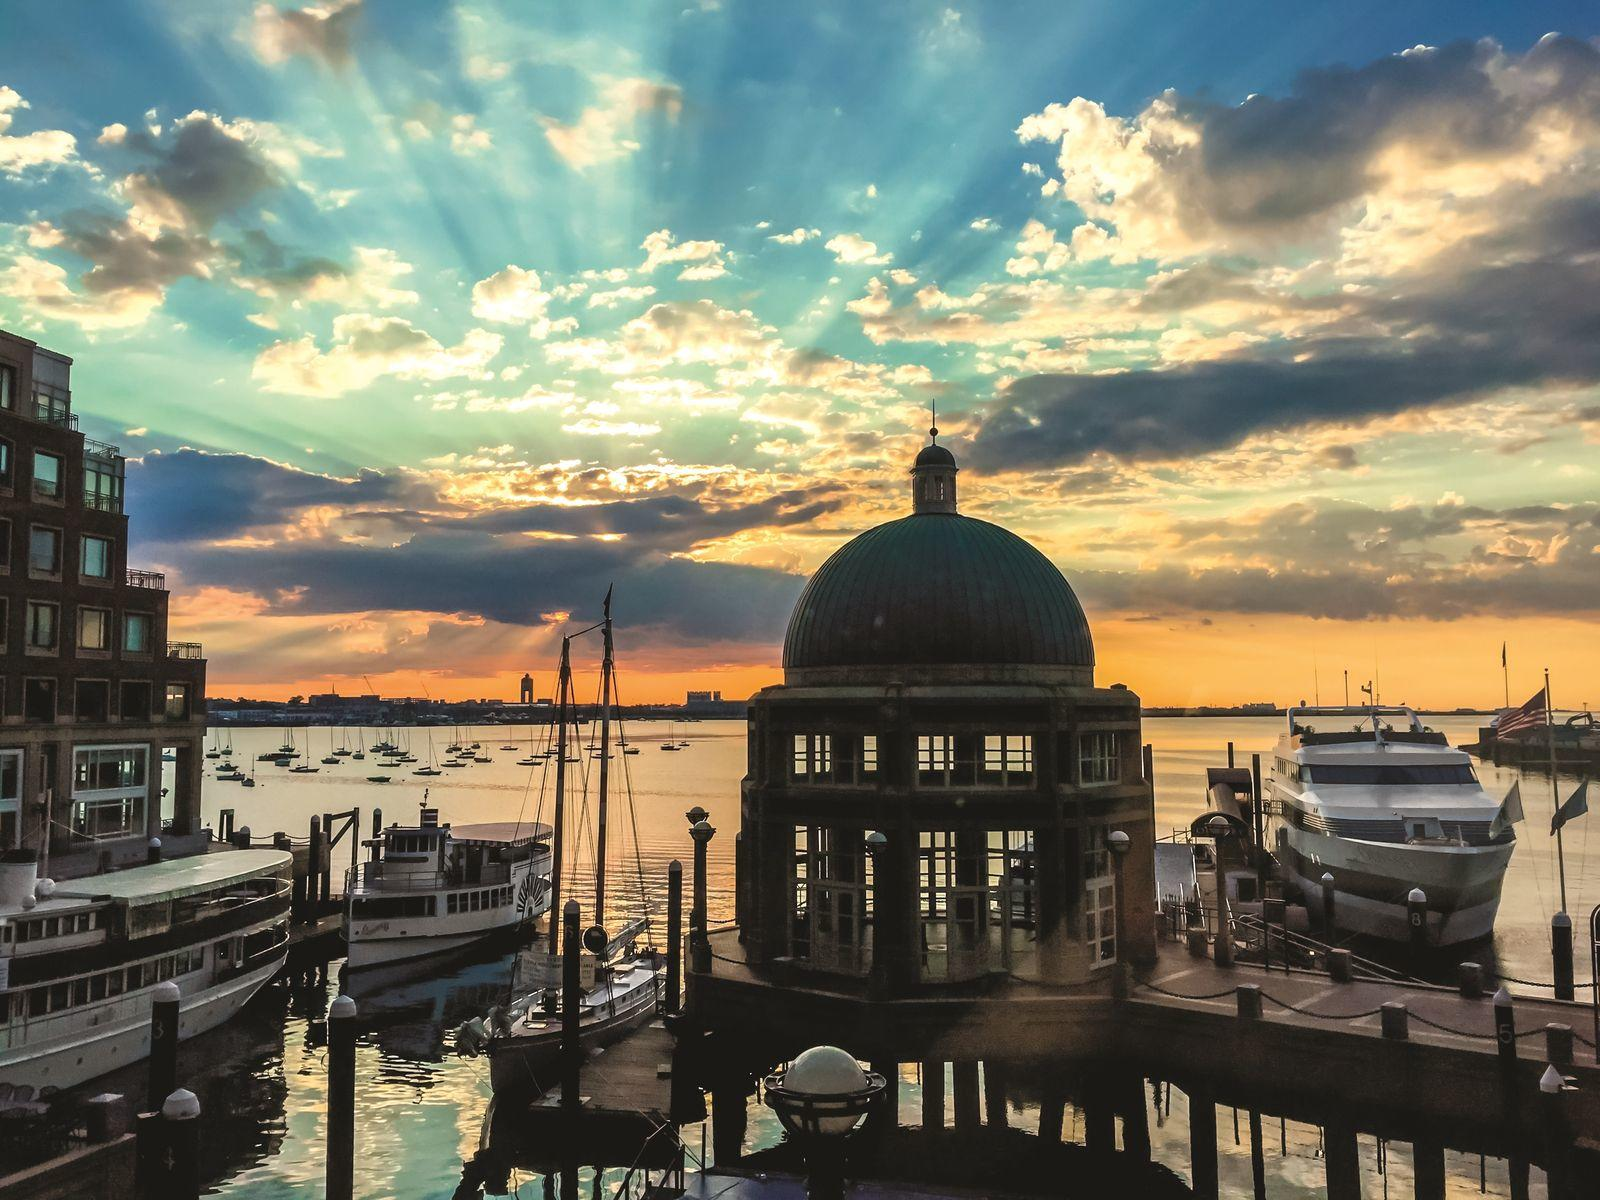 Boston Harbor at sunrise